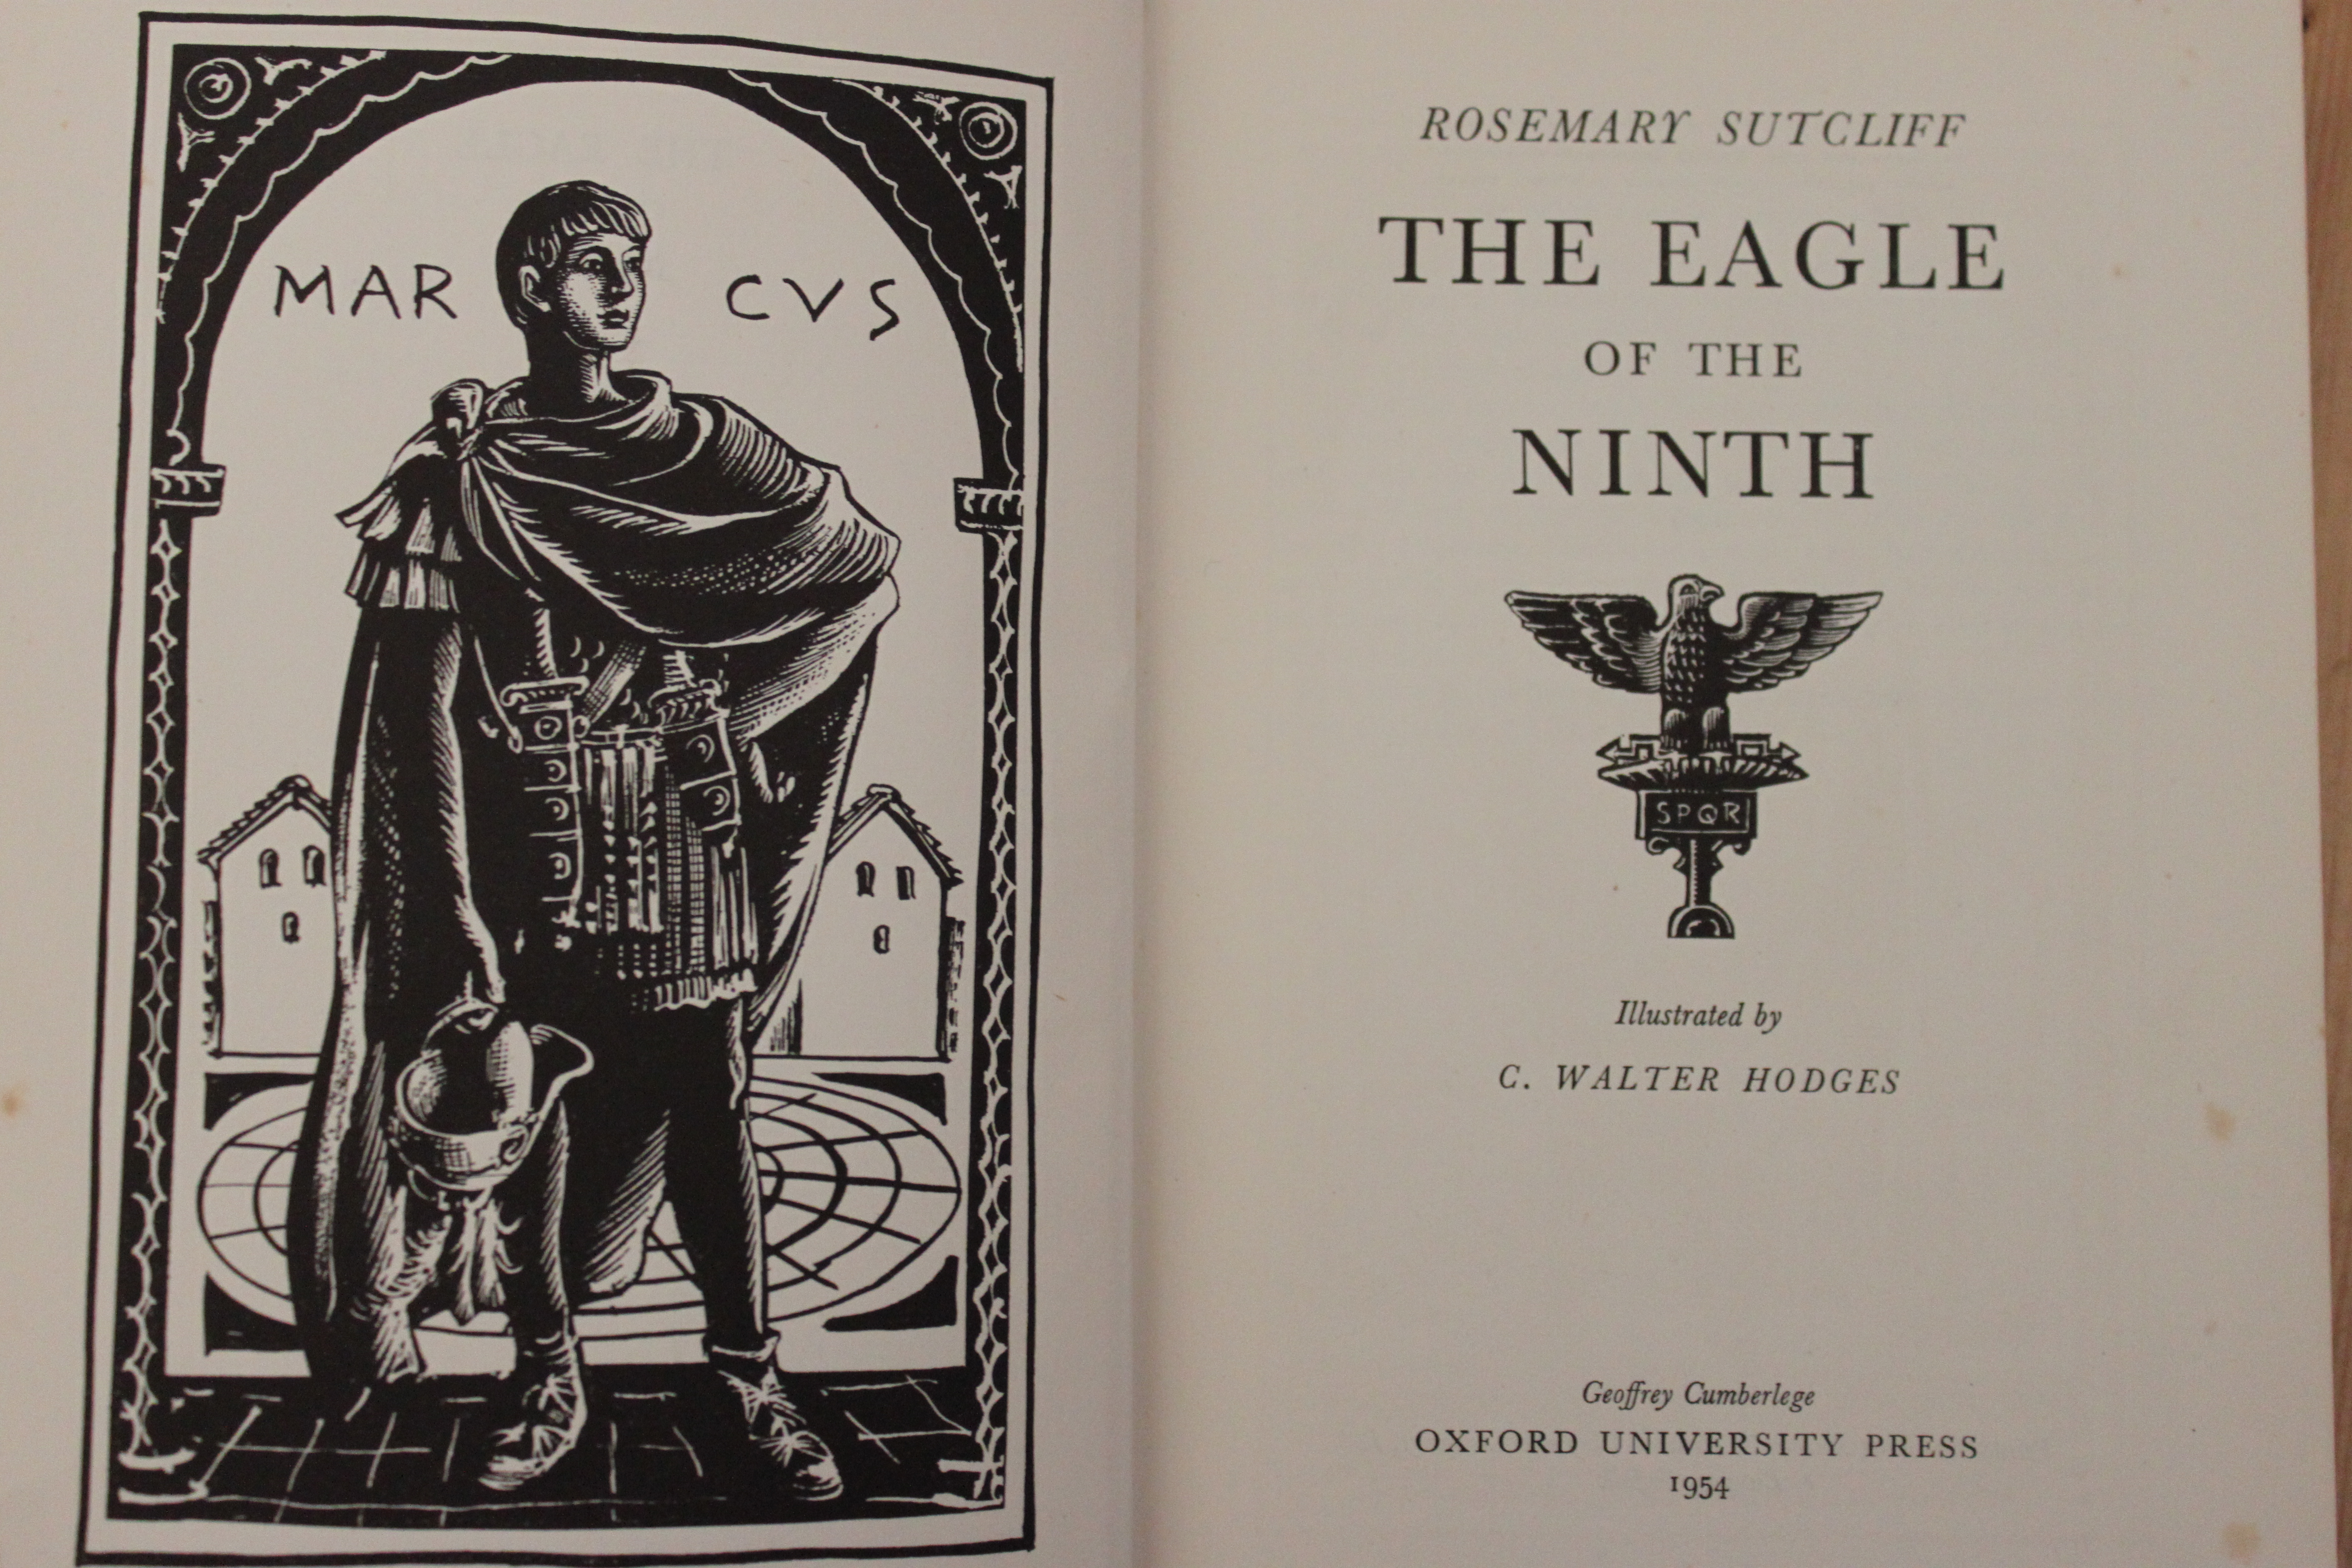 Rosemary Sutcliff's The Eagle of the Ninth | ROSEMARY SUTCLIFF